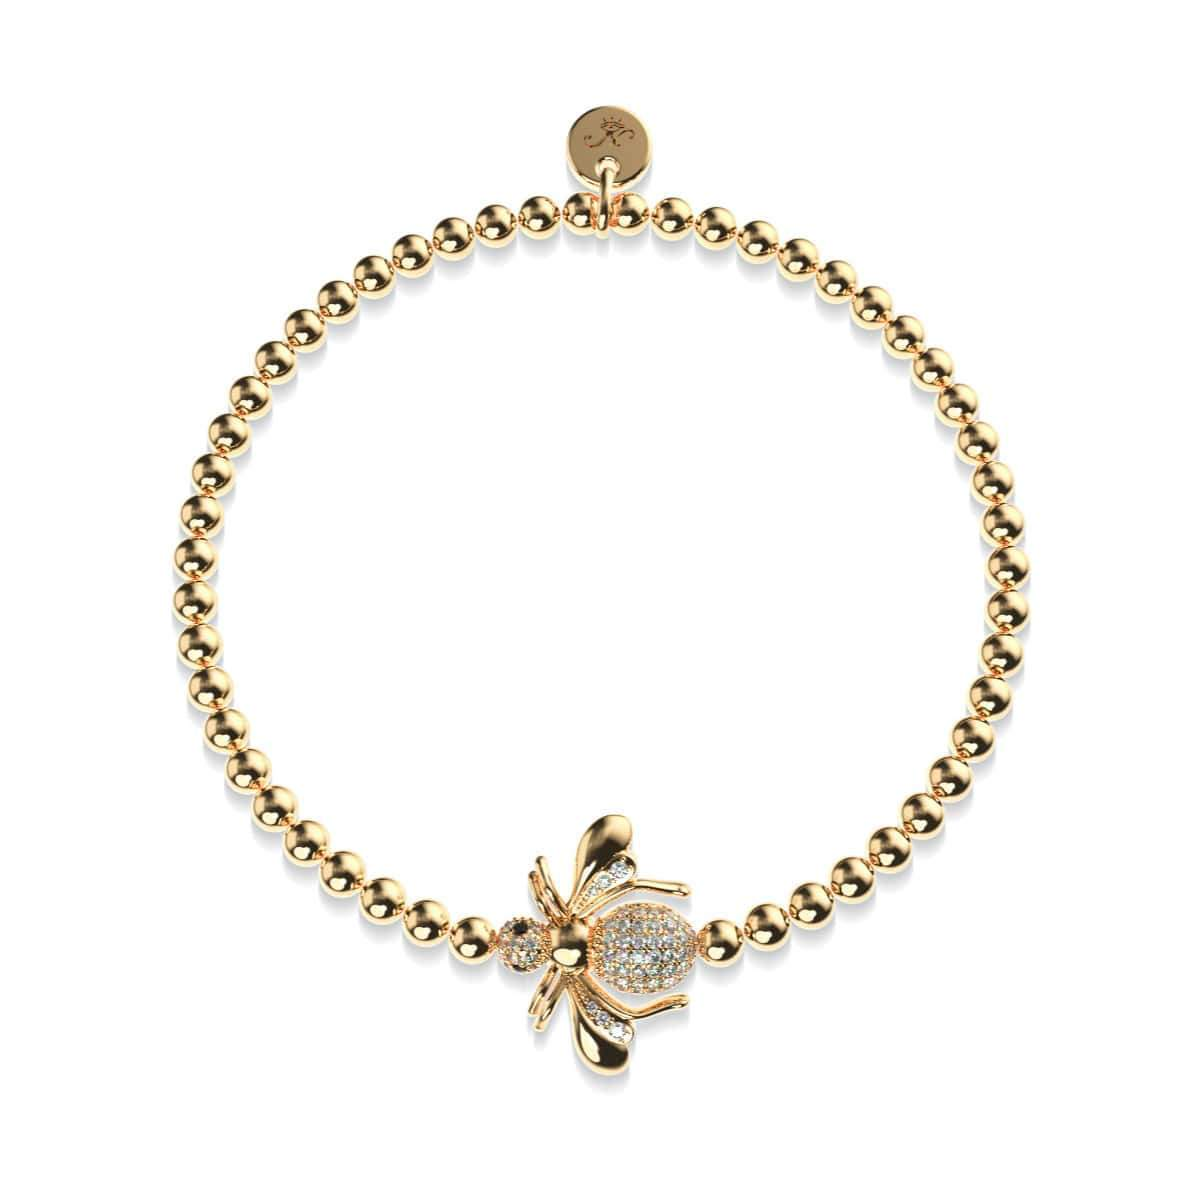 Queen | 18k Gold | Crystal Honeybee Charm Bracelet